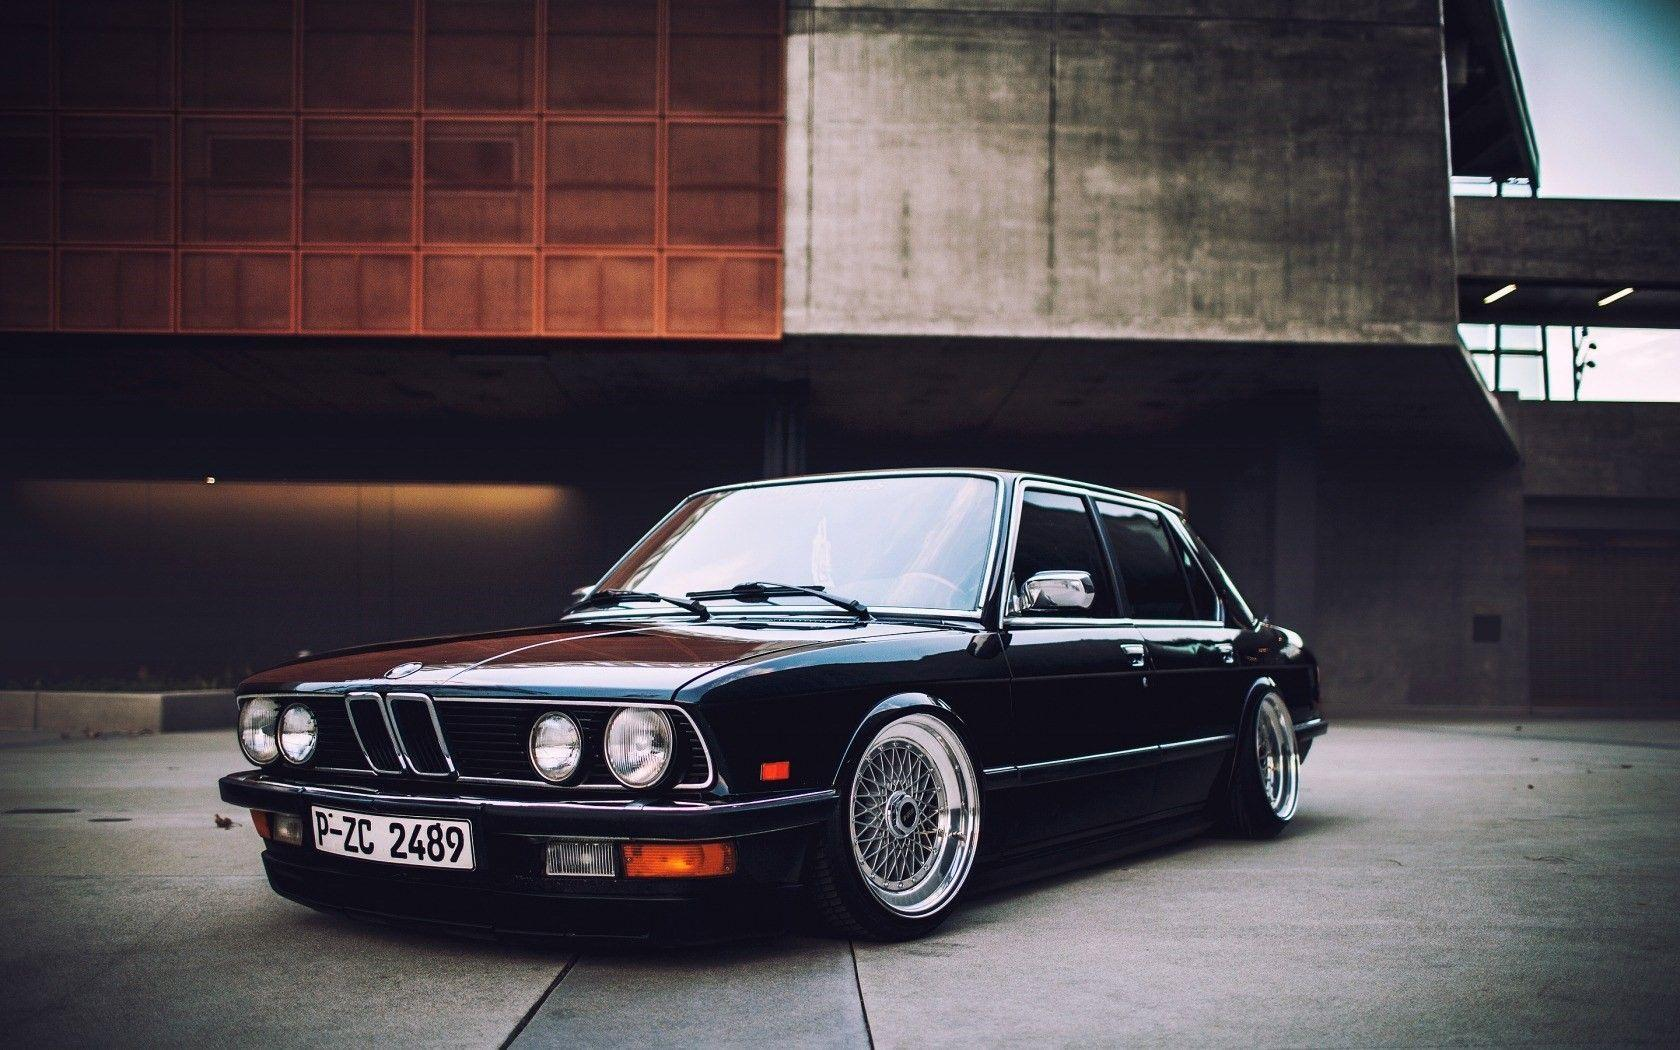 Wallpapers Bmw E21 Stance Low Car Tuning HD Picture Image • OneDSLR